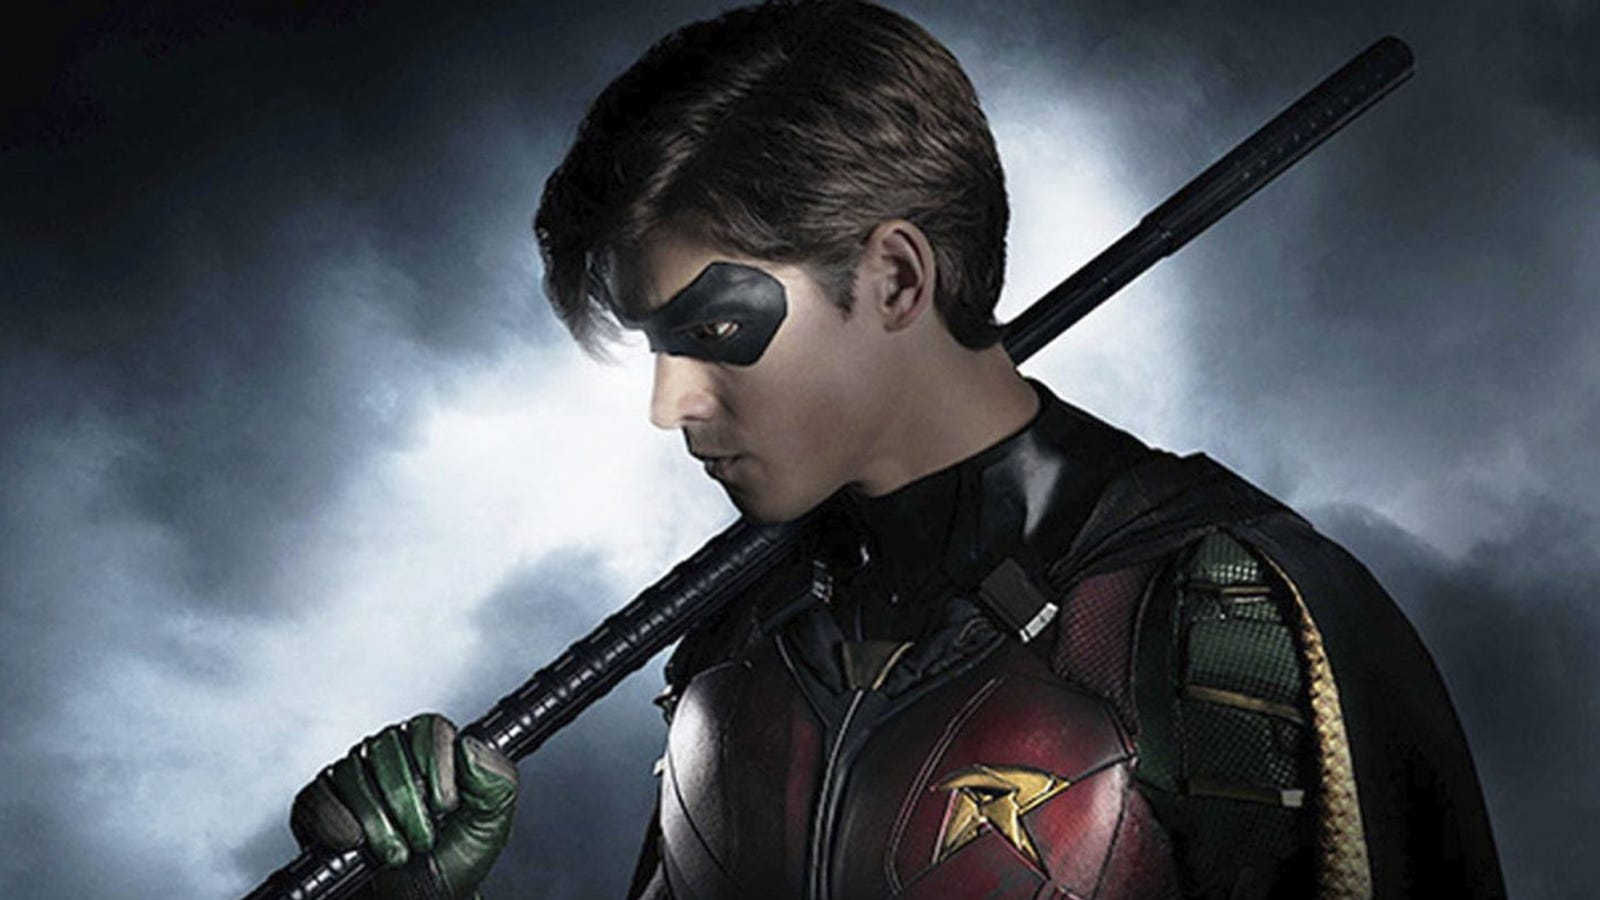 The First Titans Trailer Is a Brutal Introduction to Another Very Dark DC Universe